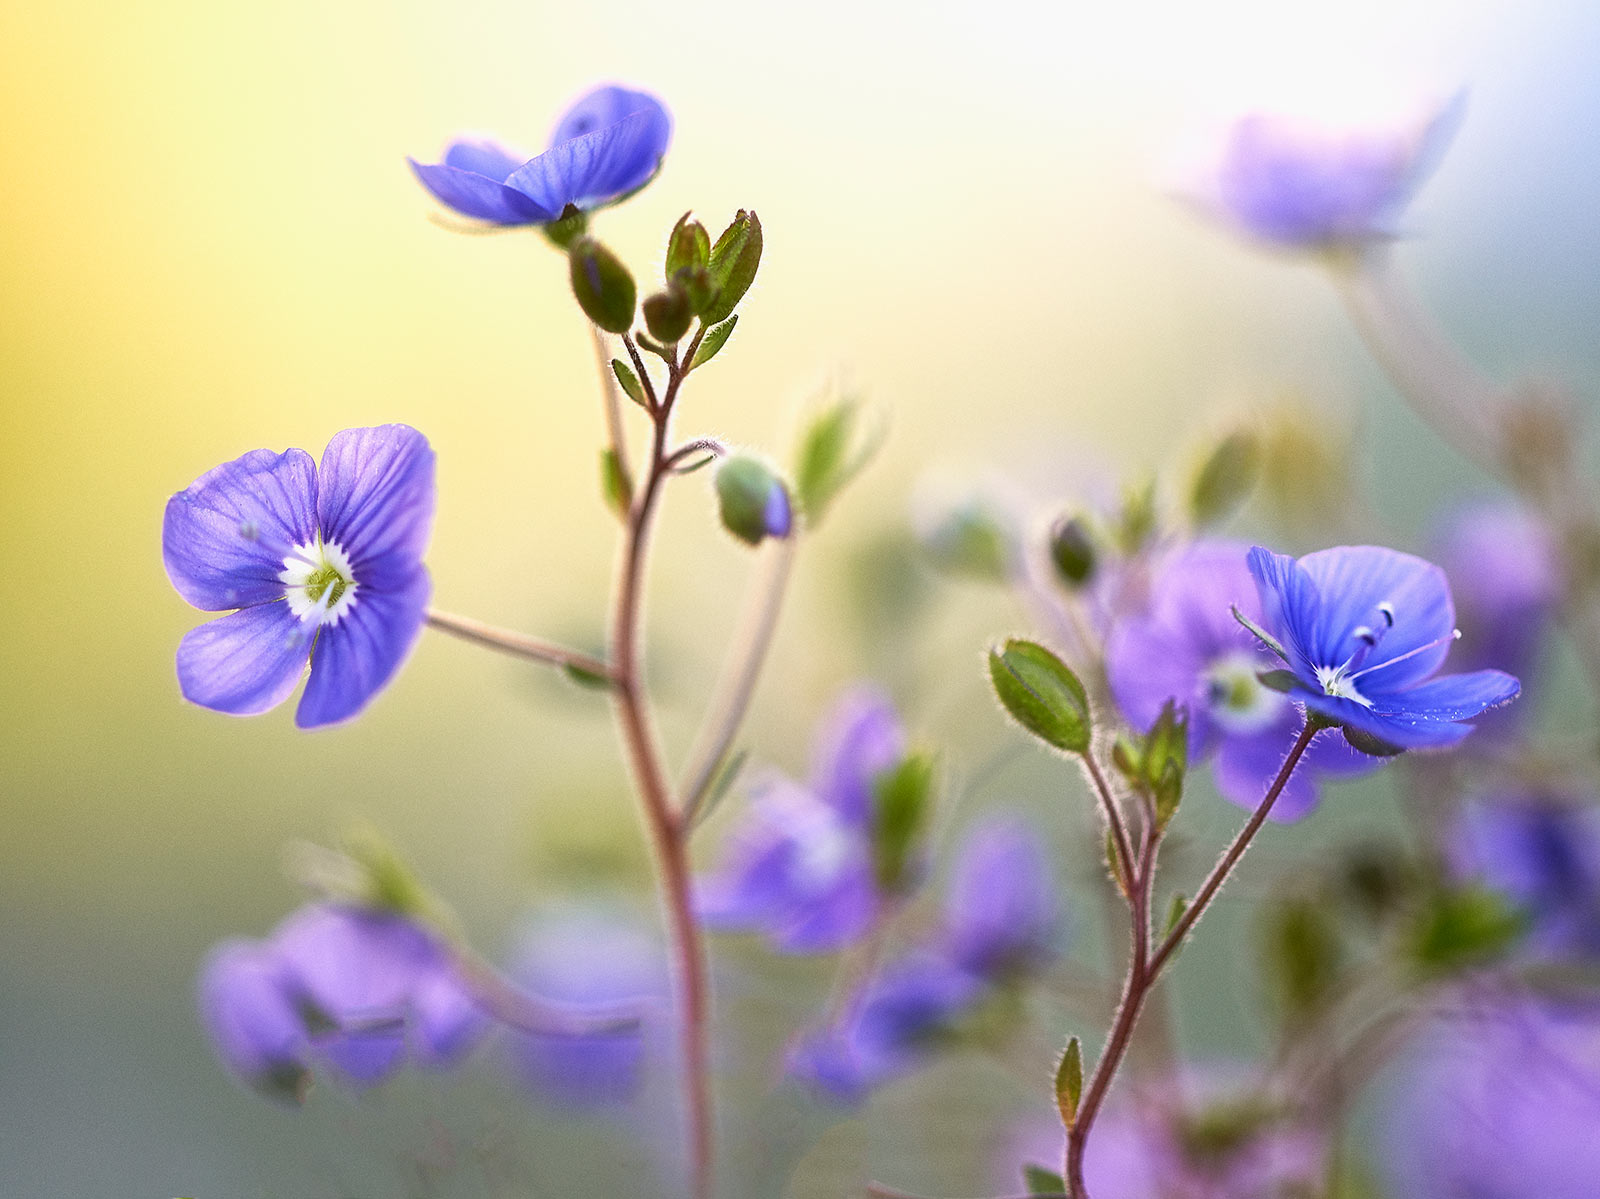 Spring, © Dianne English, Winner in category Pure Plants, Overall Winner, RHS Photographic Competition / RHS Gardening